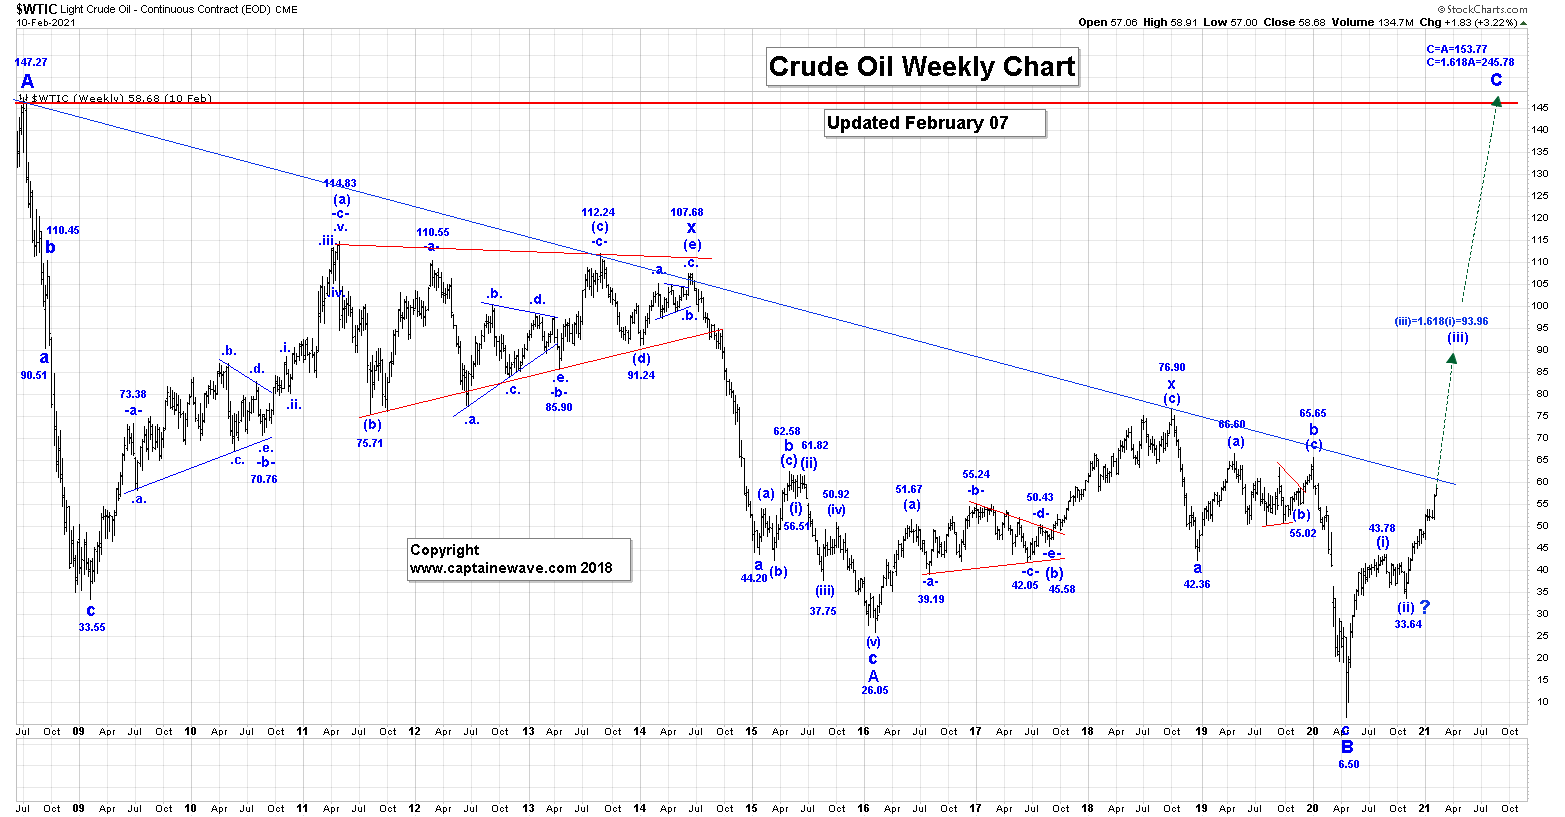 http://www.321gold.com/editorials/captainewave/captainewave021121/crude_oil_week.png